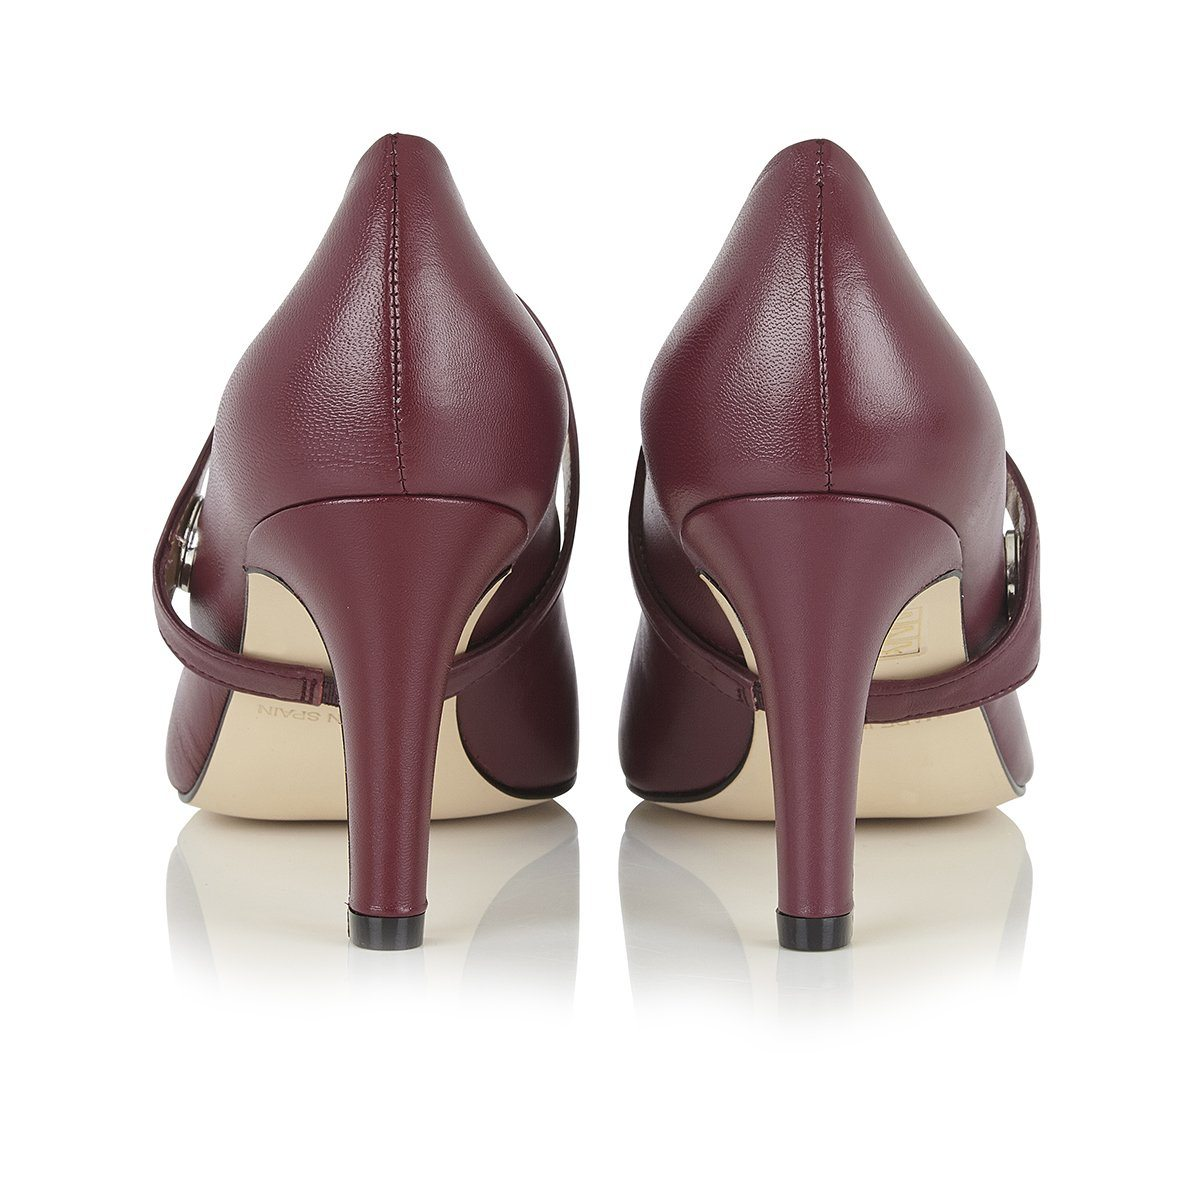 Create a Buzz - 18 Hour Heels - Plum Nappa Leather - Shoes by Shaherazad